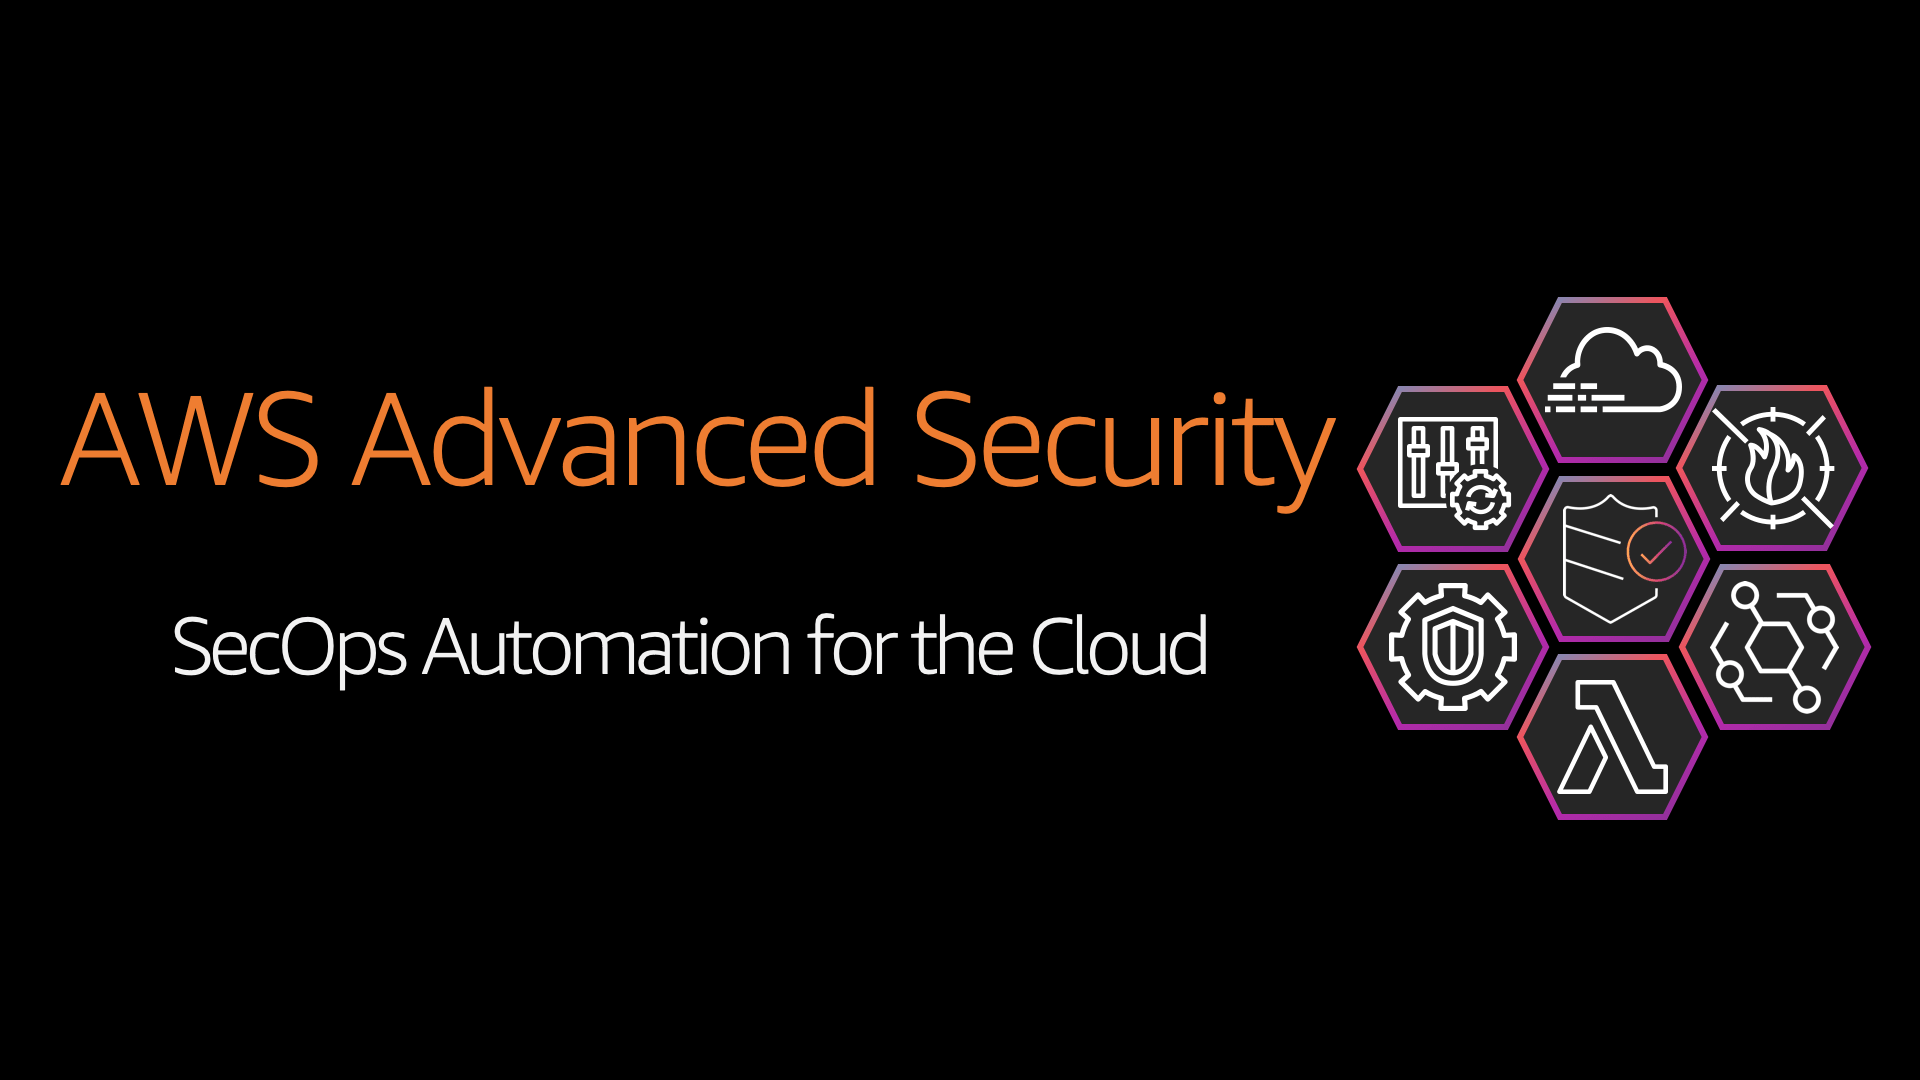 AWS Advanced Security: SecOps Automation for the cloud